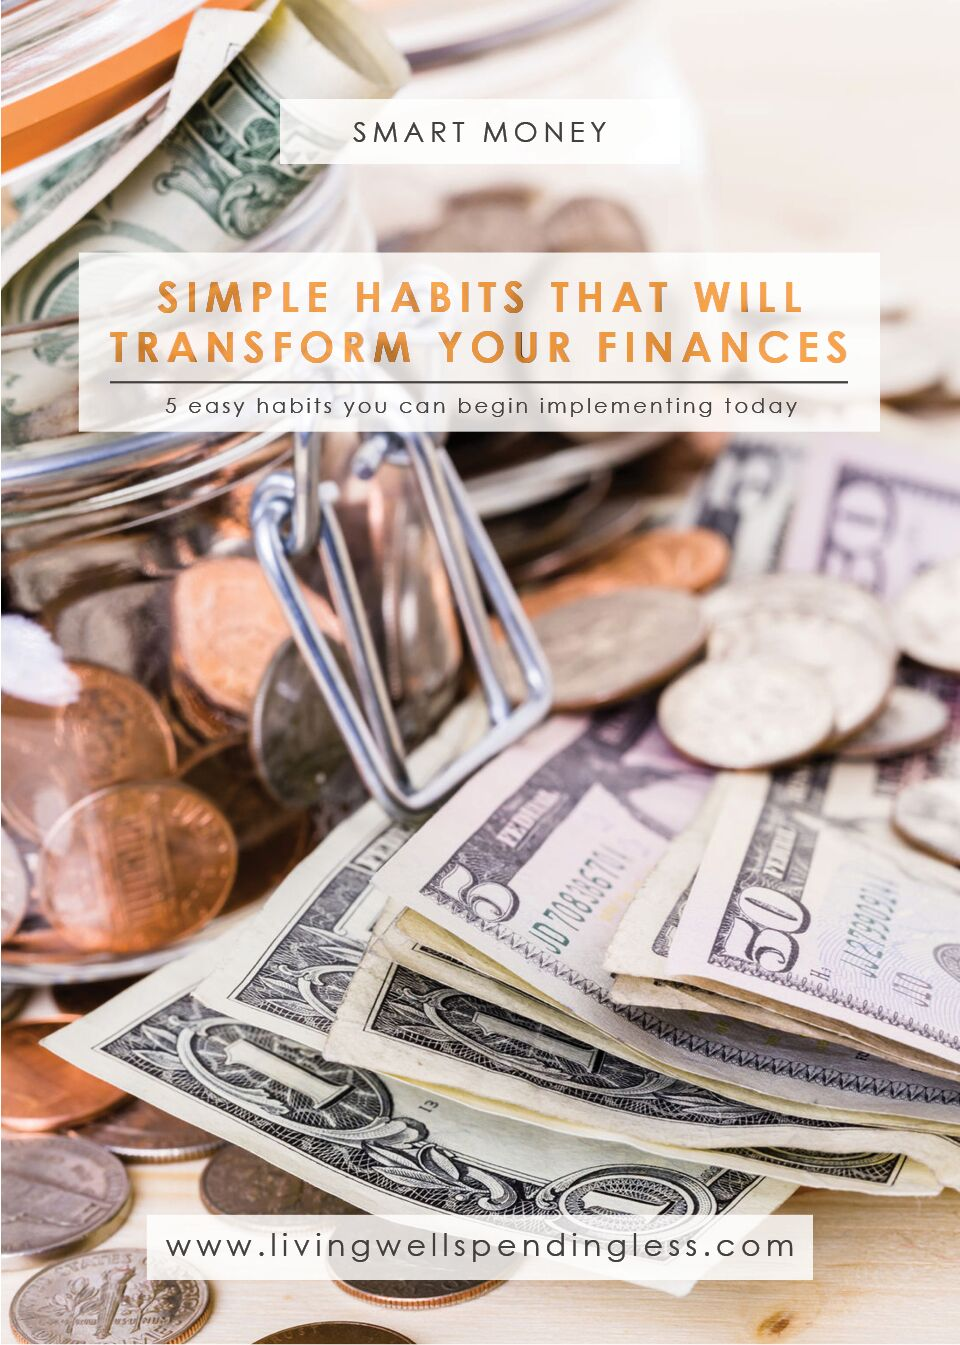 5 Life Changing Simple Habits | Change Your Life With Mini Habits | Life Change | Life Hacks | Habits That Will Change Your Life | Simple Life Habits | Ways to a Healthy Life